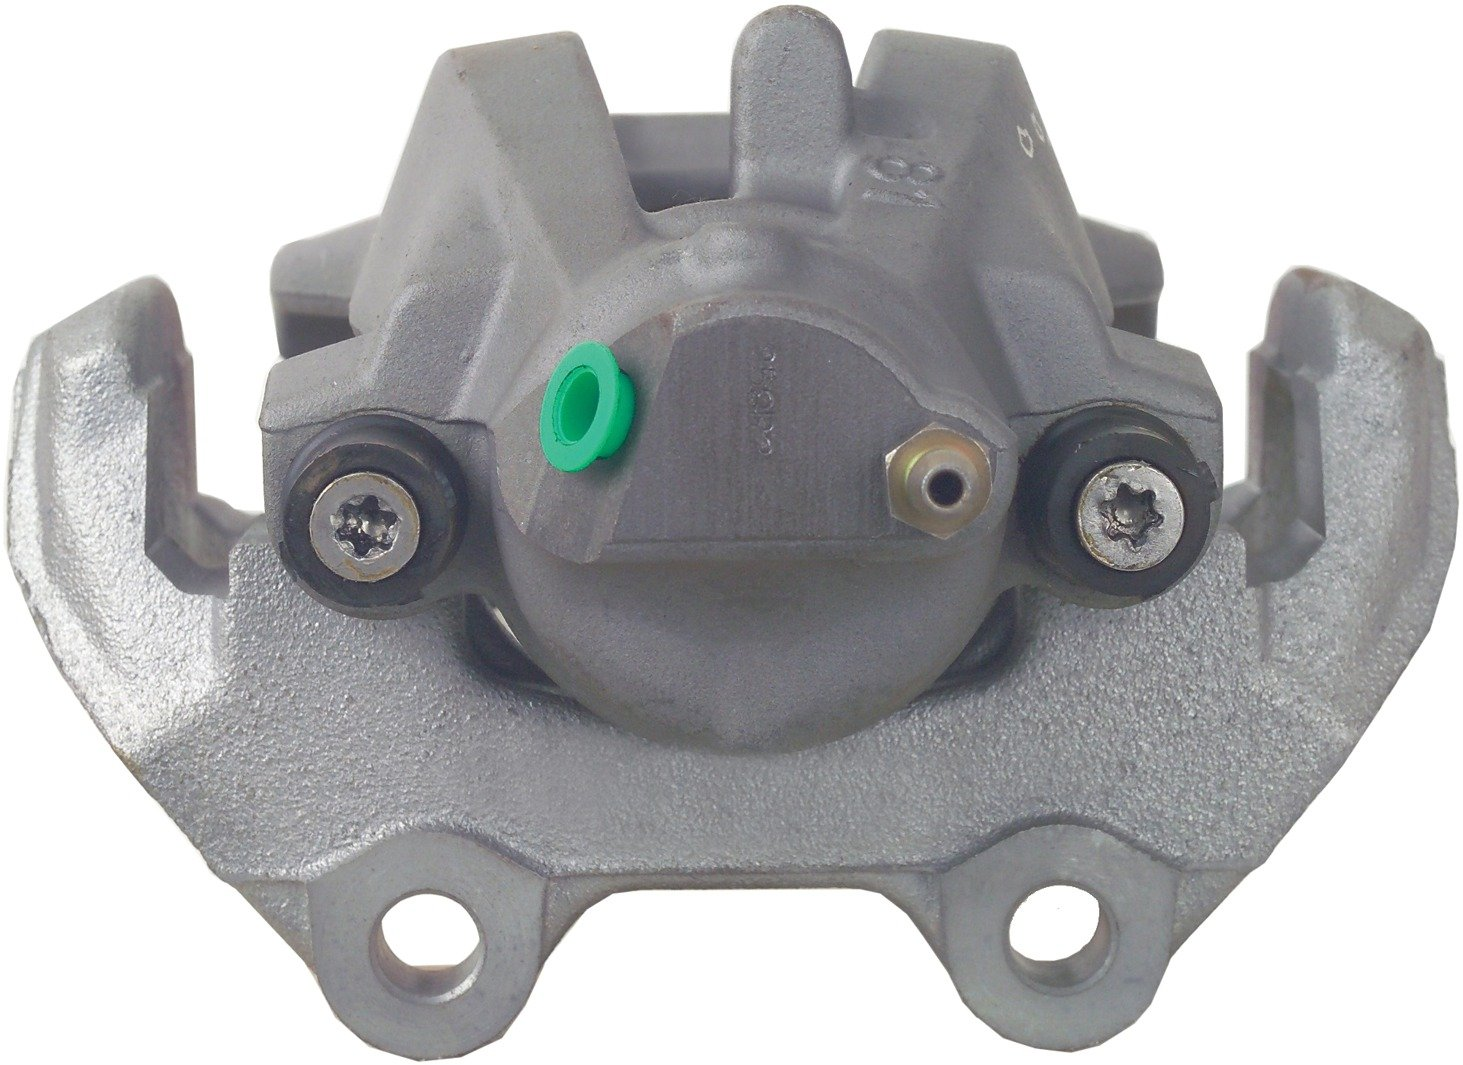 Cardone 19-B2937 Remanufactured Import Friction Ready (Unloaded) Brake Caliper by A1 Cardone (Image #1)